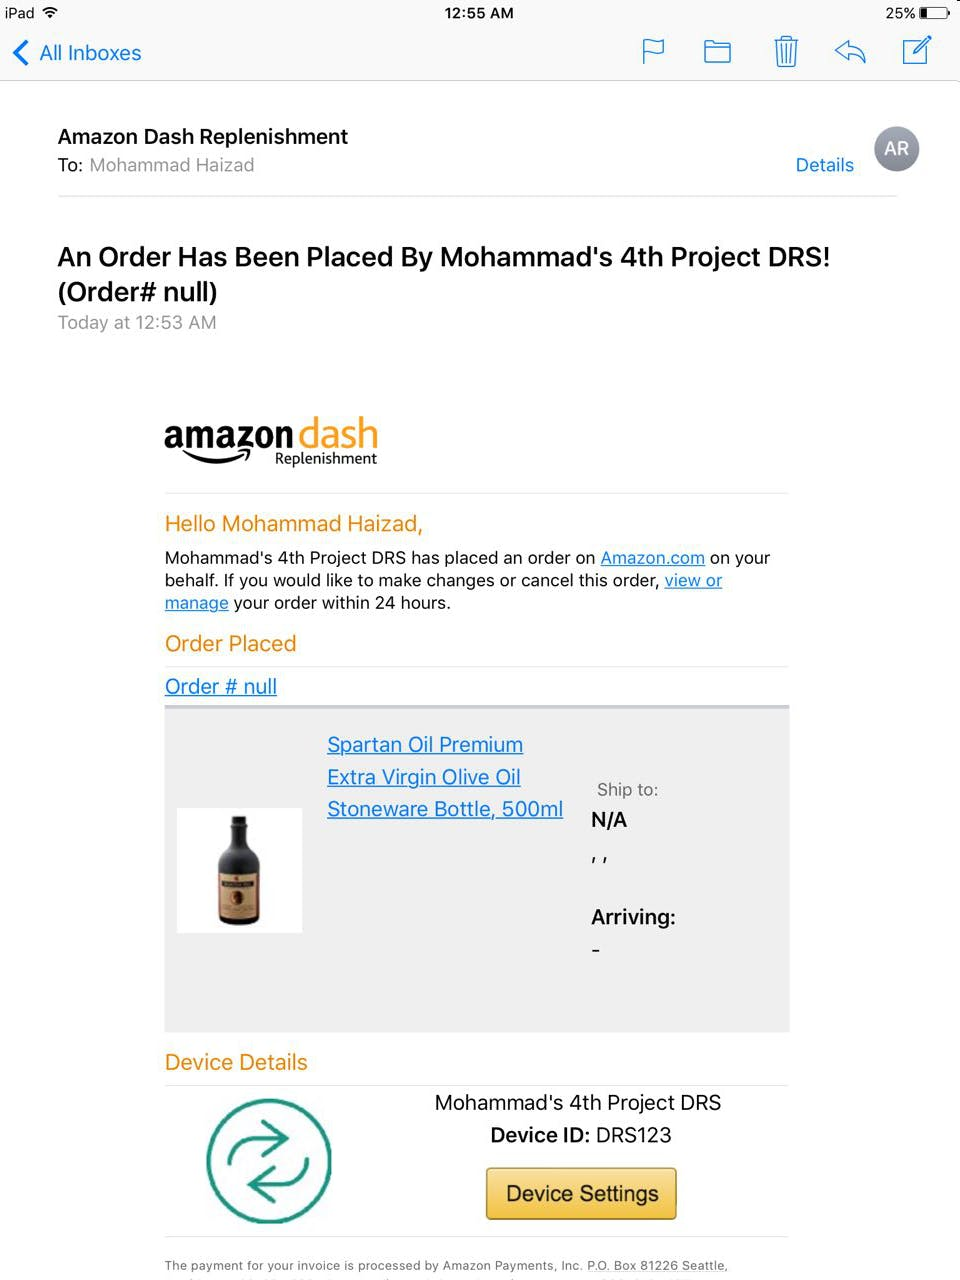 Email confirmation of olive oil purchased